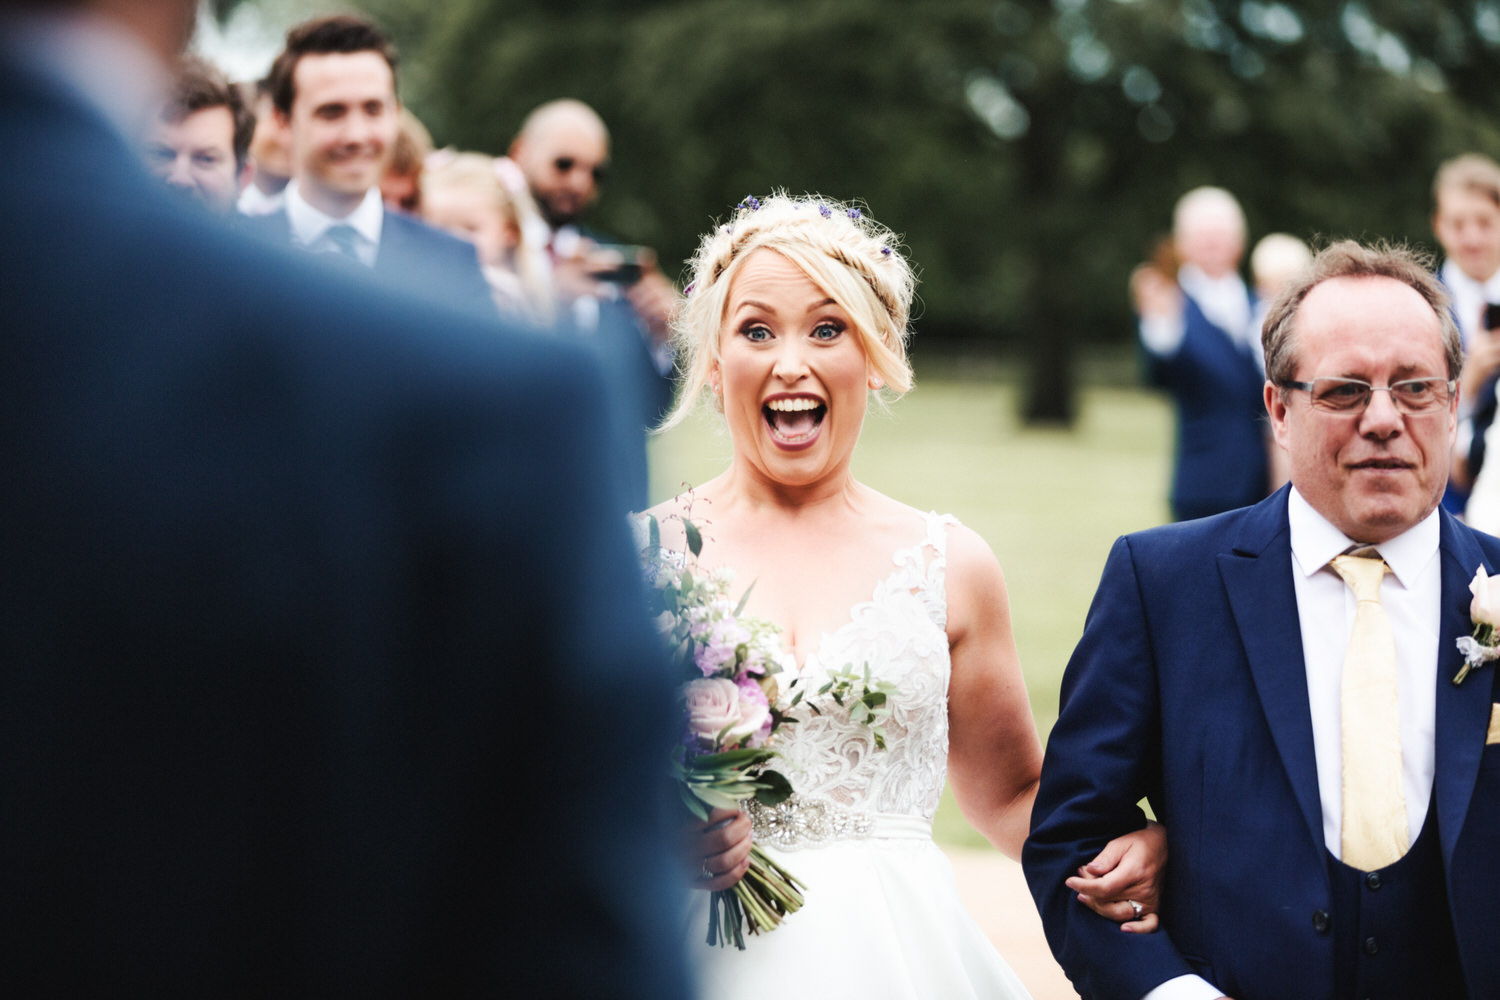 The brides reaction to her partner as she walks down the aisle with her dad